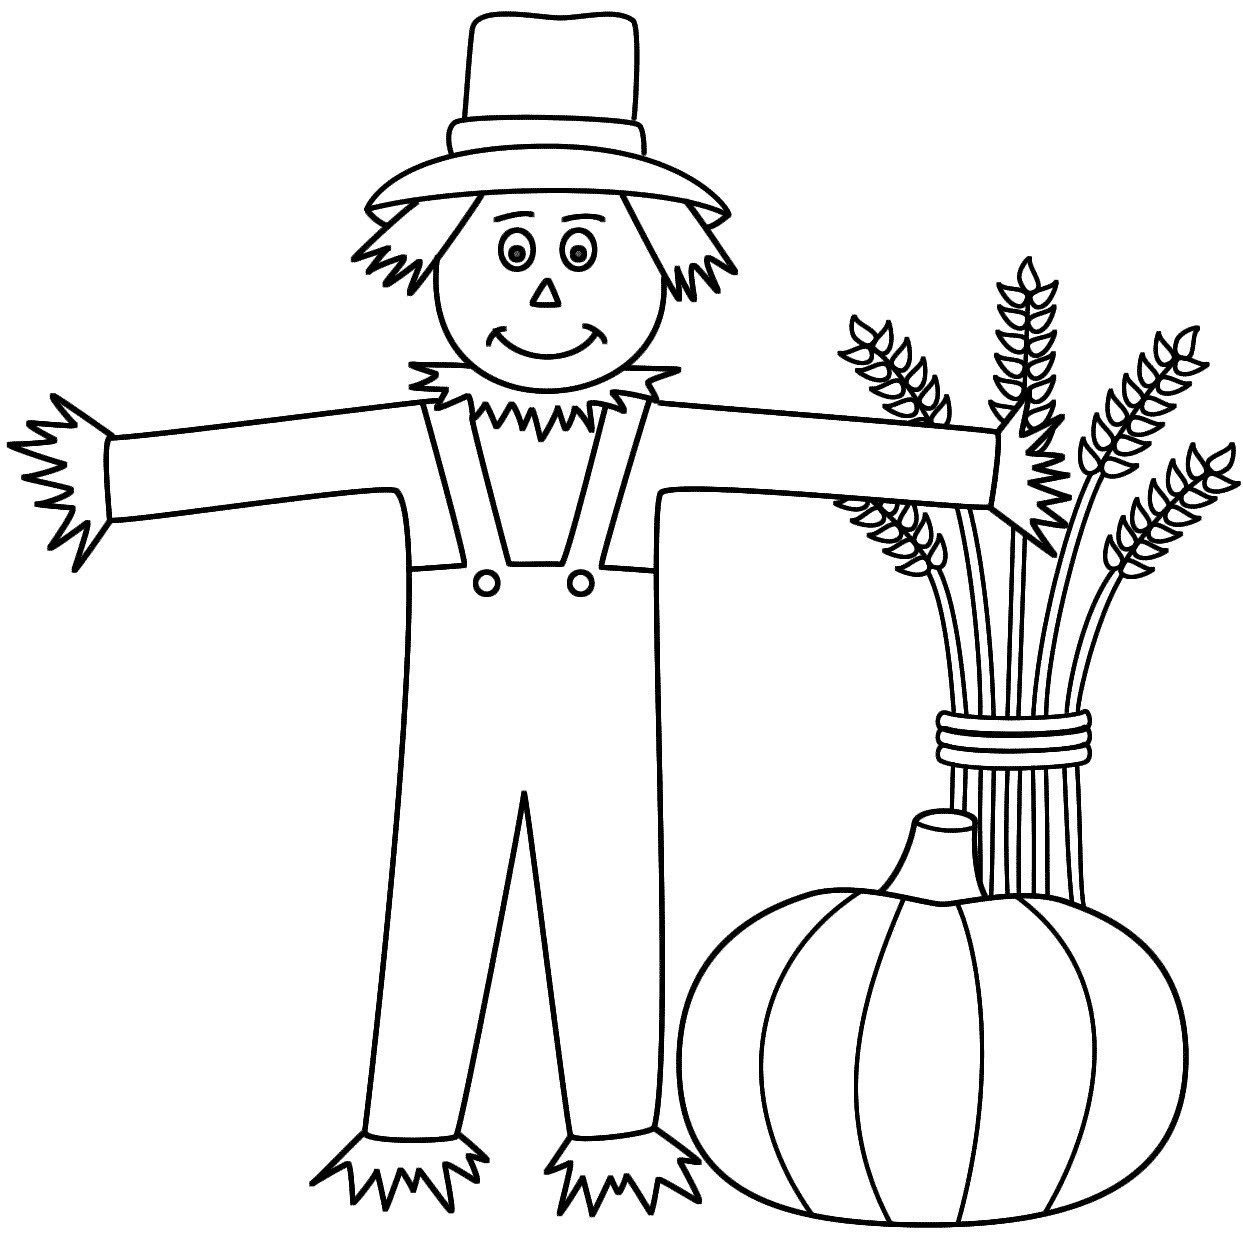 22 Beautiful Image Of Scarecrow Coloring Page Davemelillo Com Pumpkin Coloring Pages Fall Coloring Pages Scarecrow Coloring Pages Free Printable